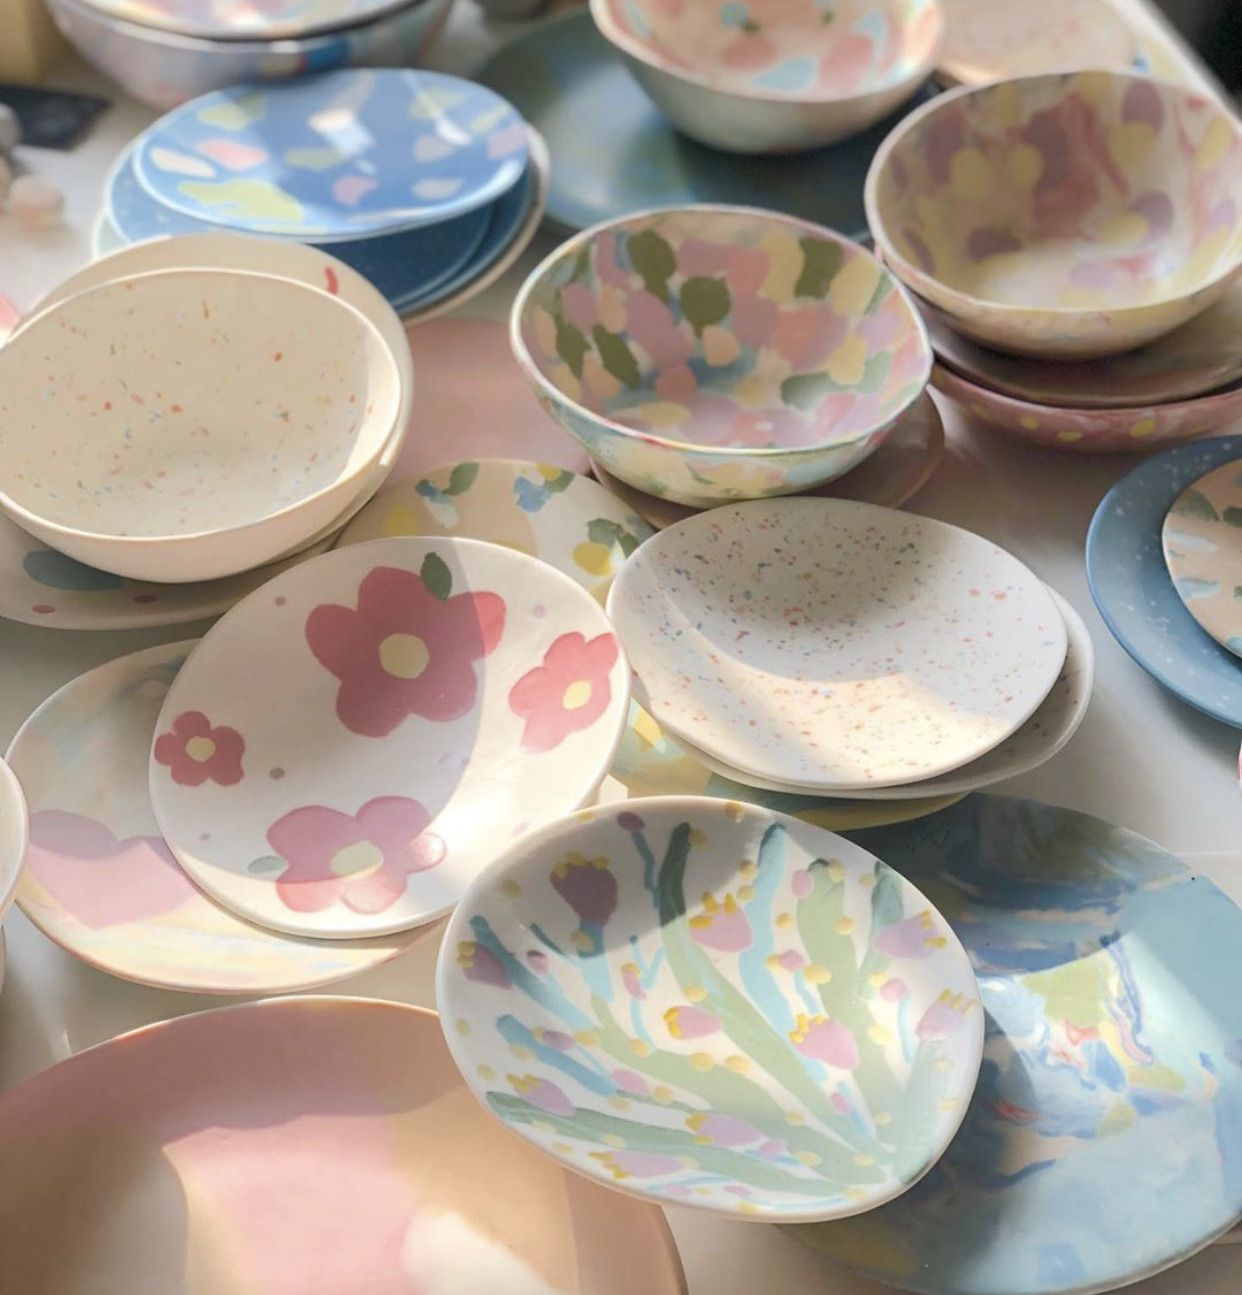 Pin by ♡∂εzү♡ on My aesthetic in 6  Tableware, Candy floss